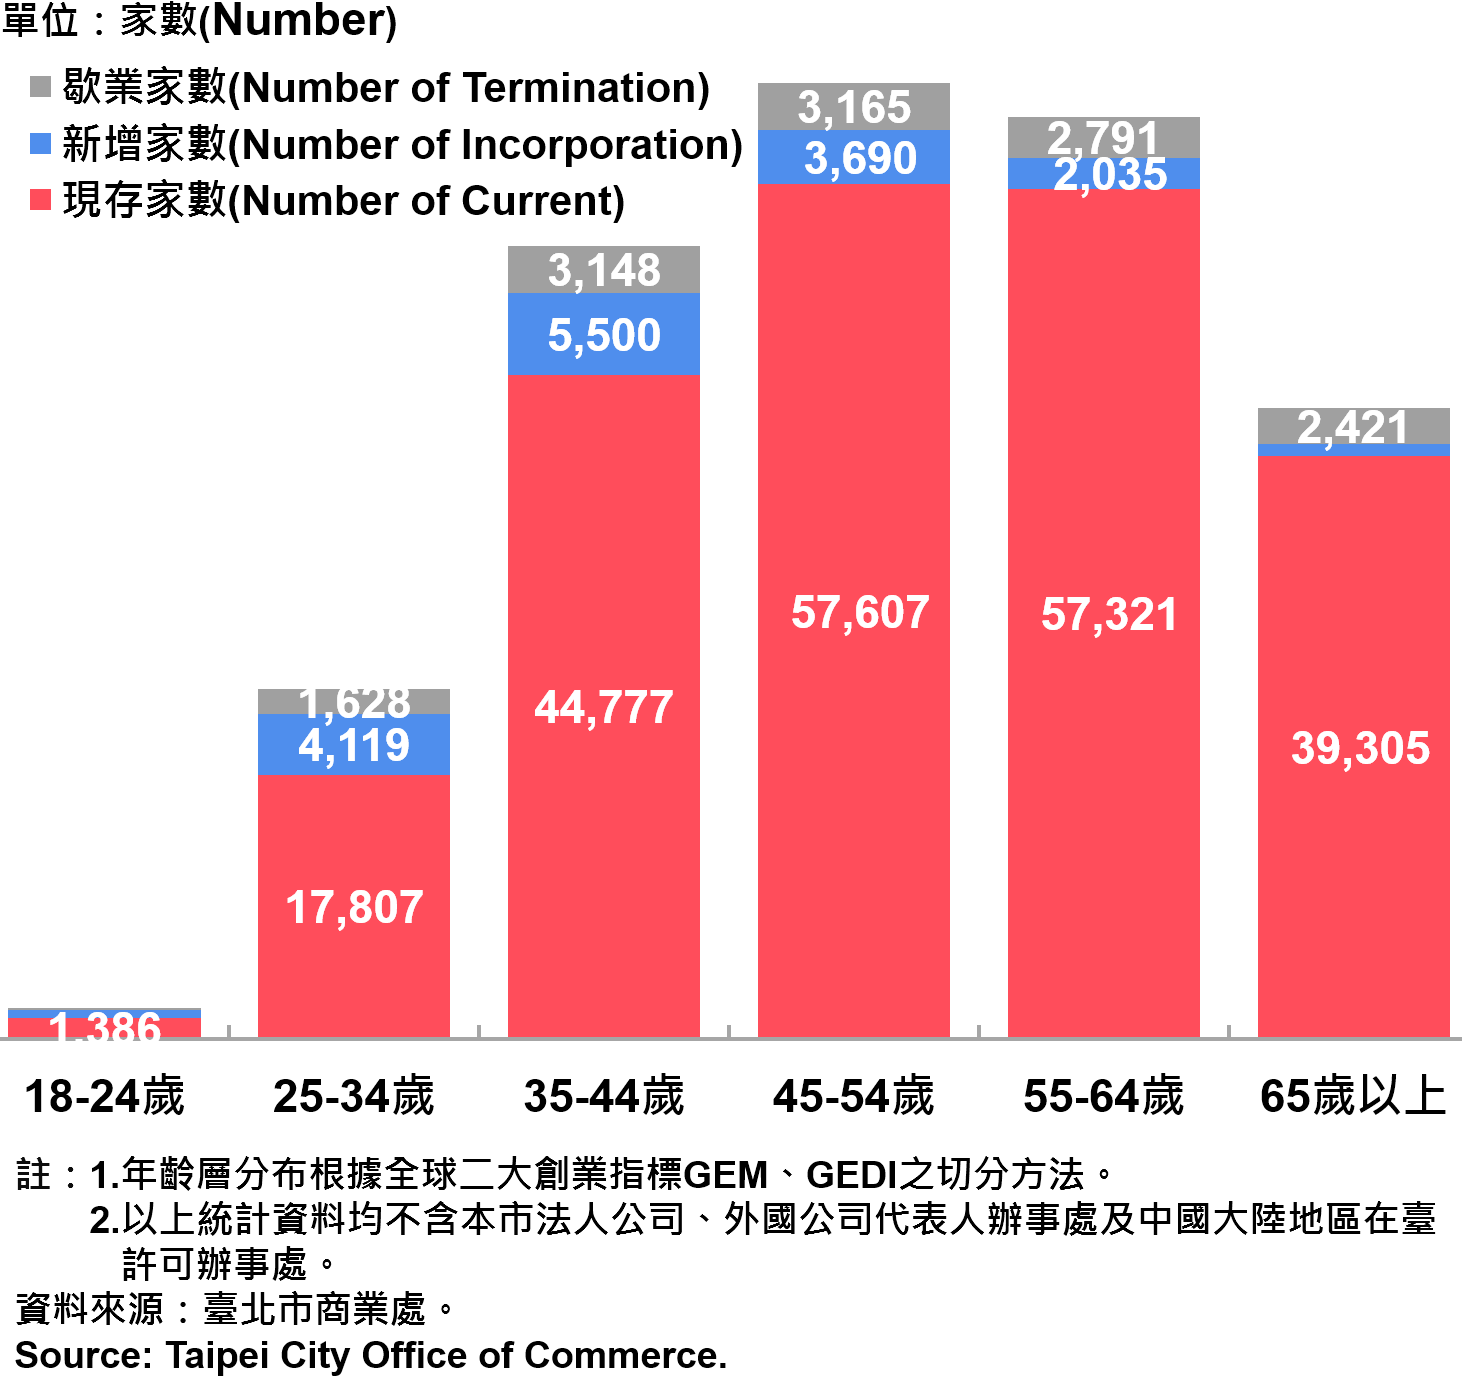 臺北市公司行號負責人年齡分布情形—2018 Responsible Person of Newly Registered Companies In Taipei by Age—2018